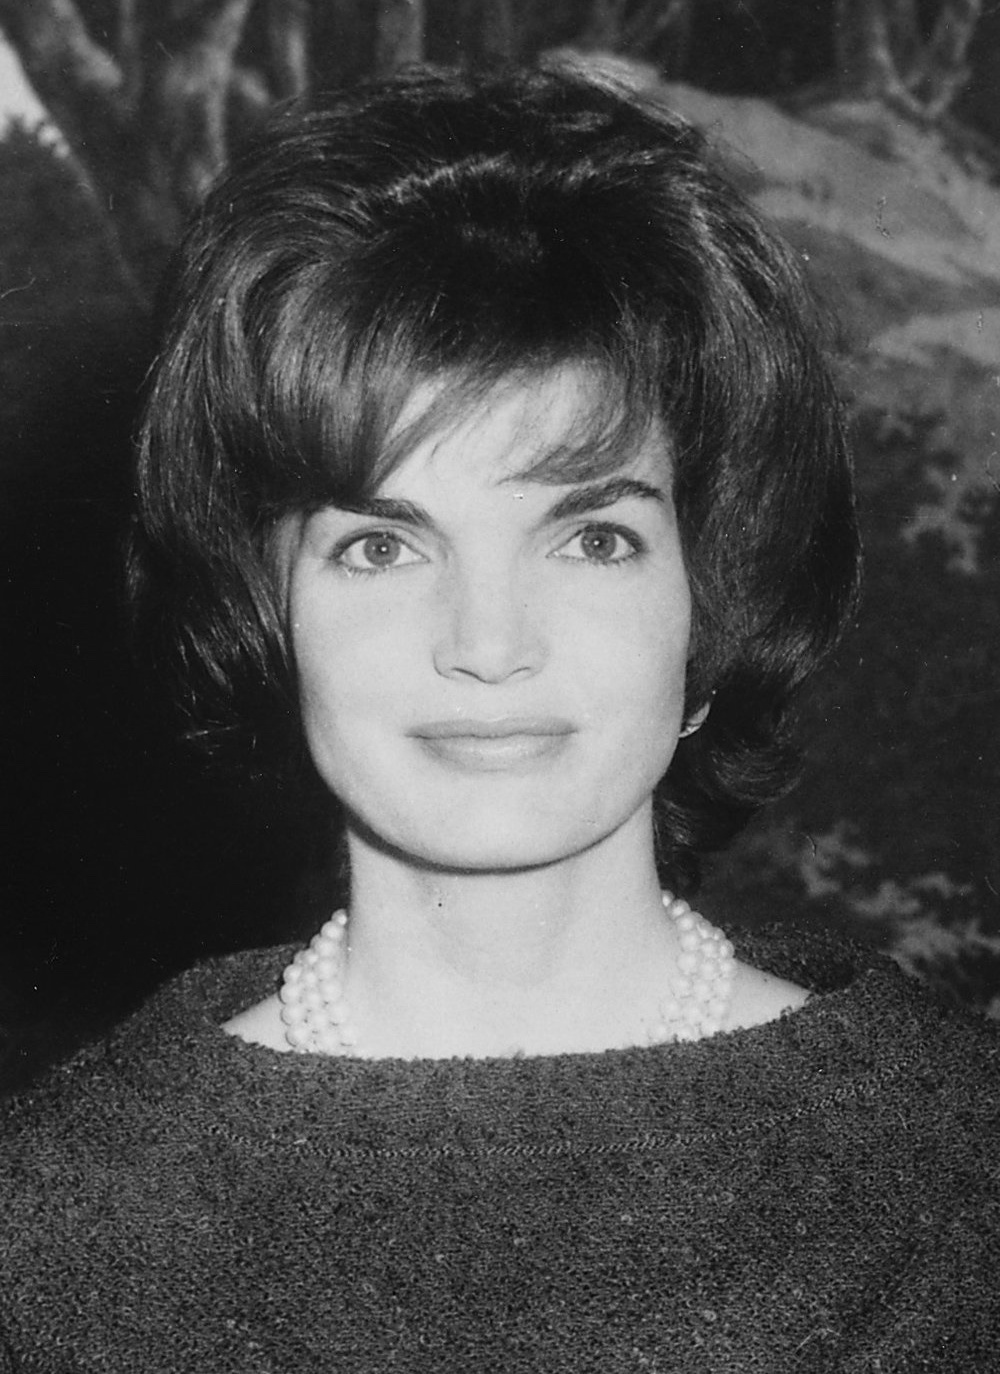 Jacqueline Kennedy Onassis furthermore World War Ii 1950s together with Watch also 10 Great East London Films as well sovietposters. on education of the 1950s